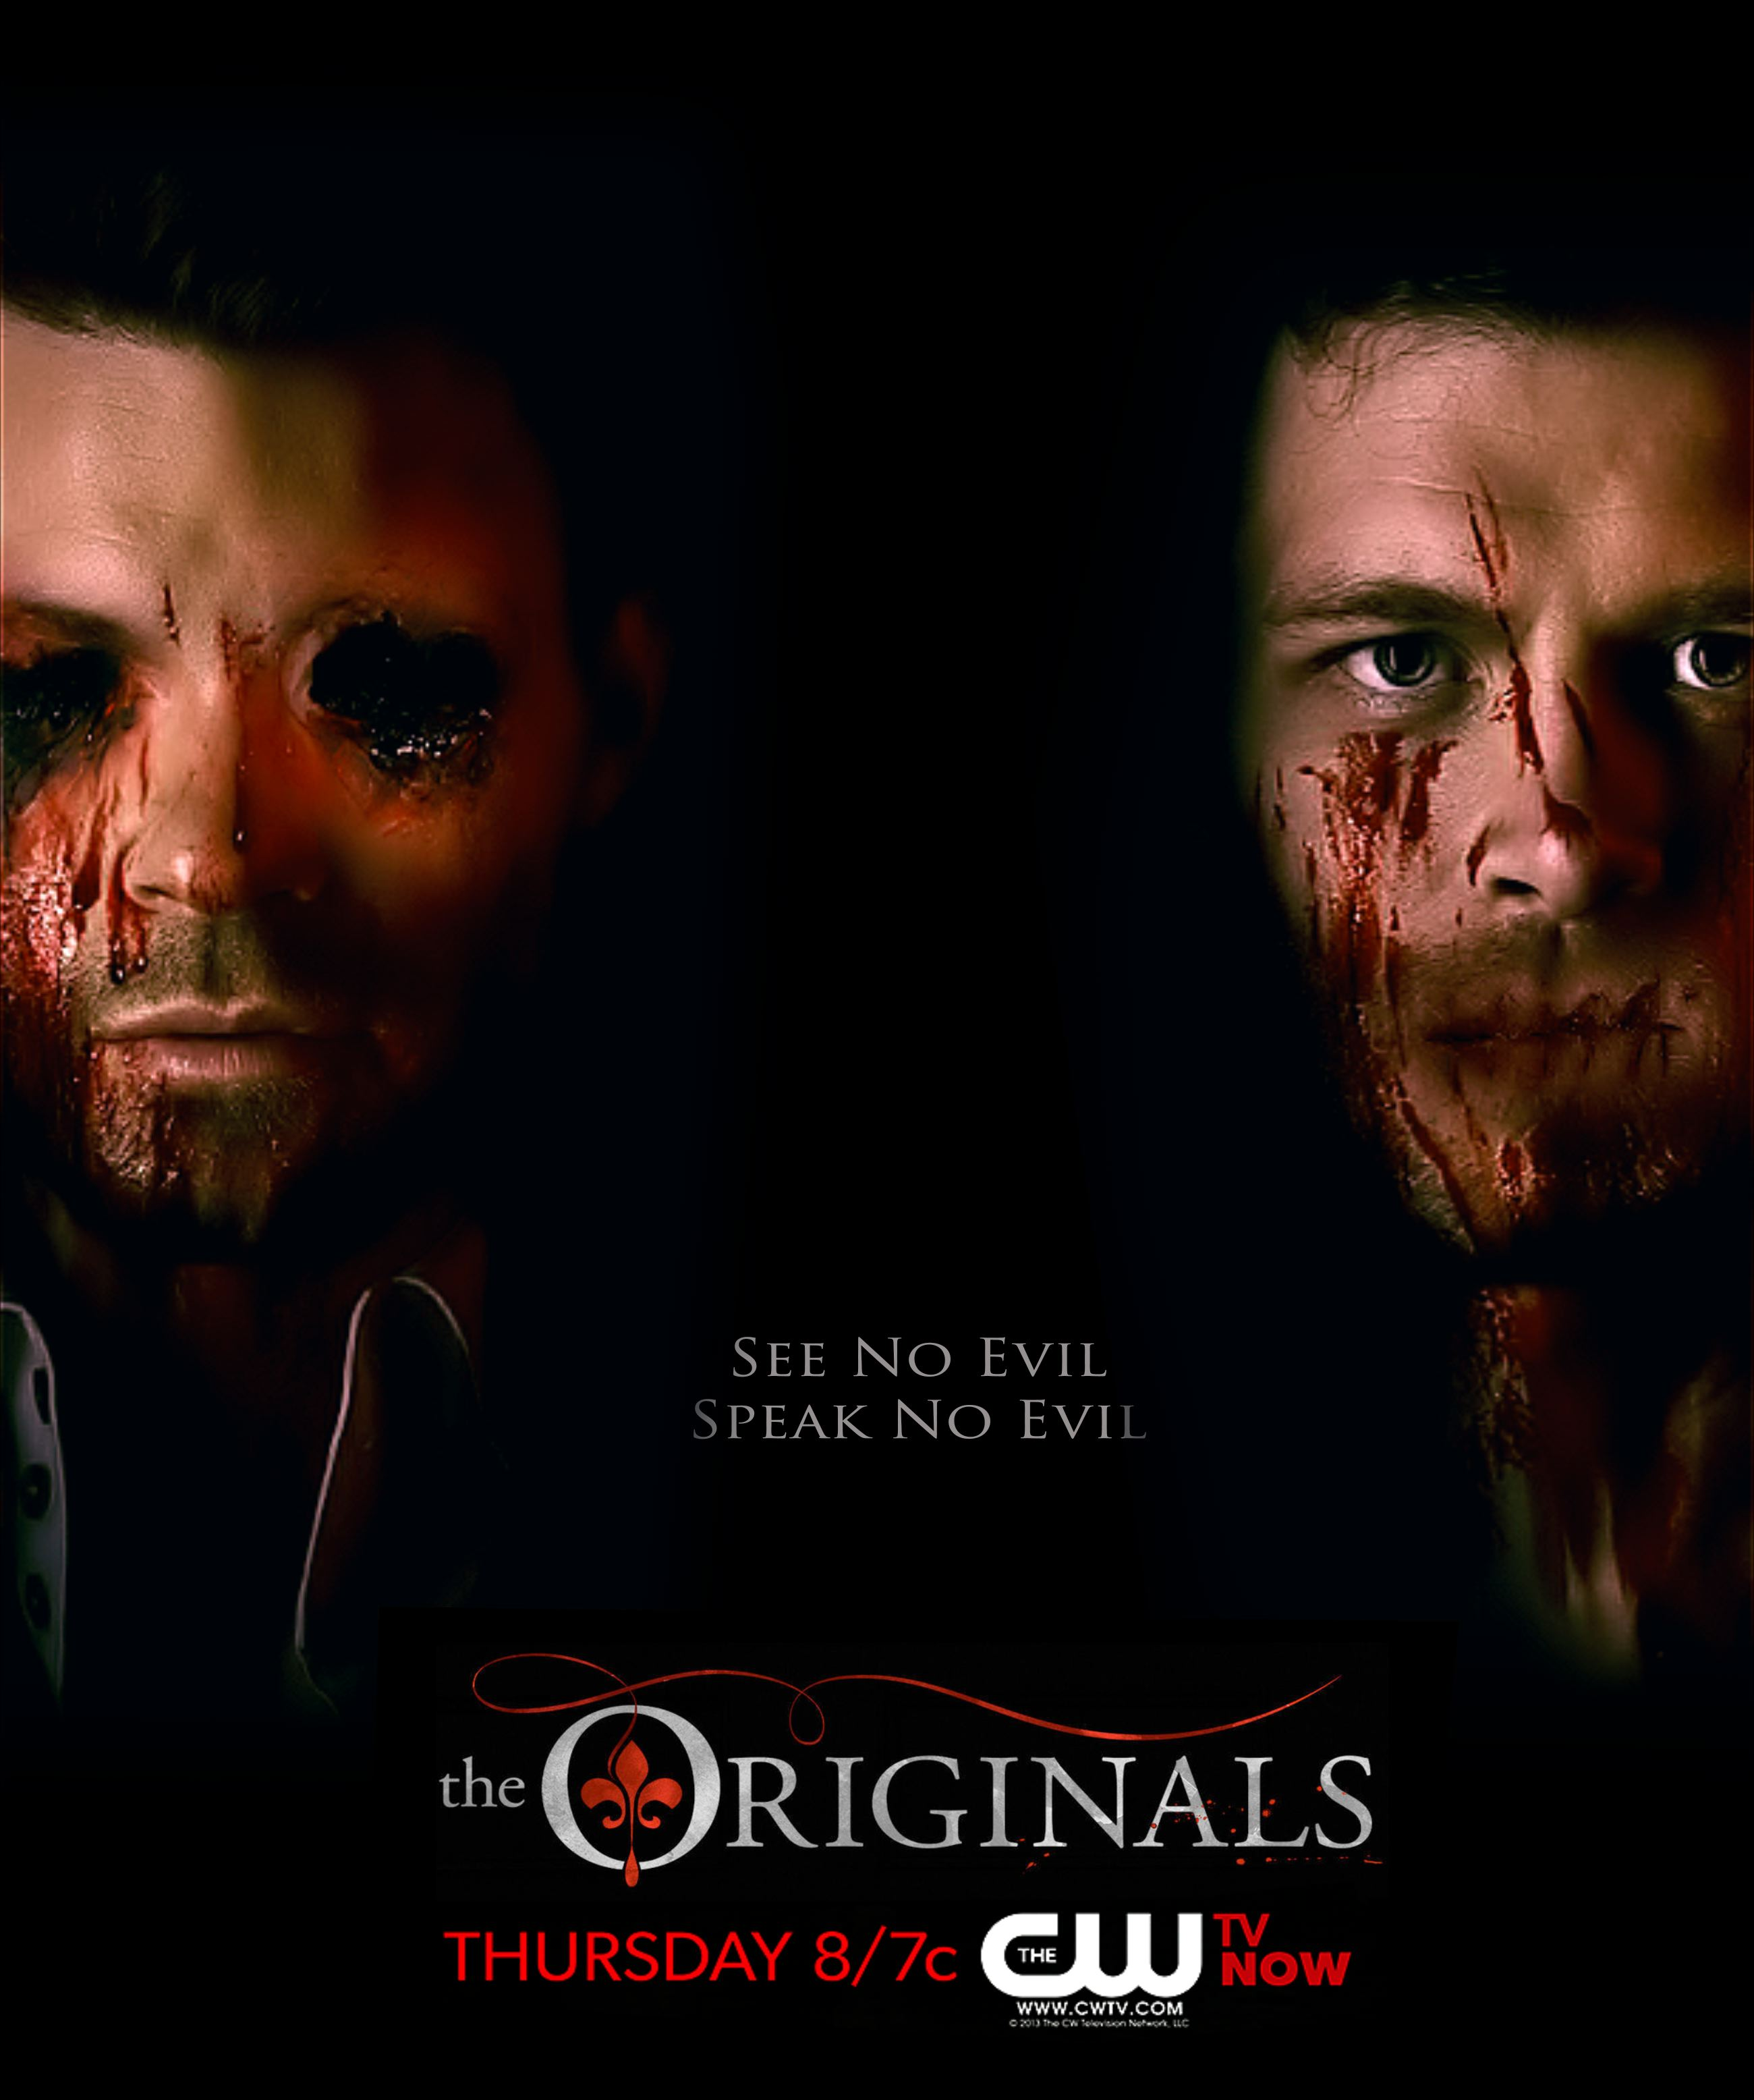 The Originals: Season 3 Promotional Poster By MacSchaer On